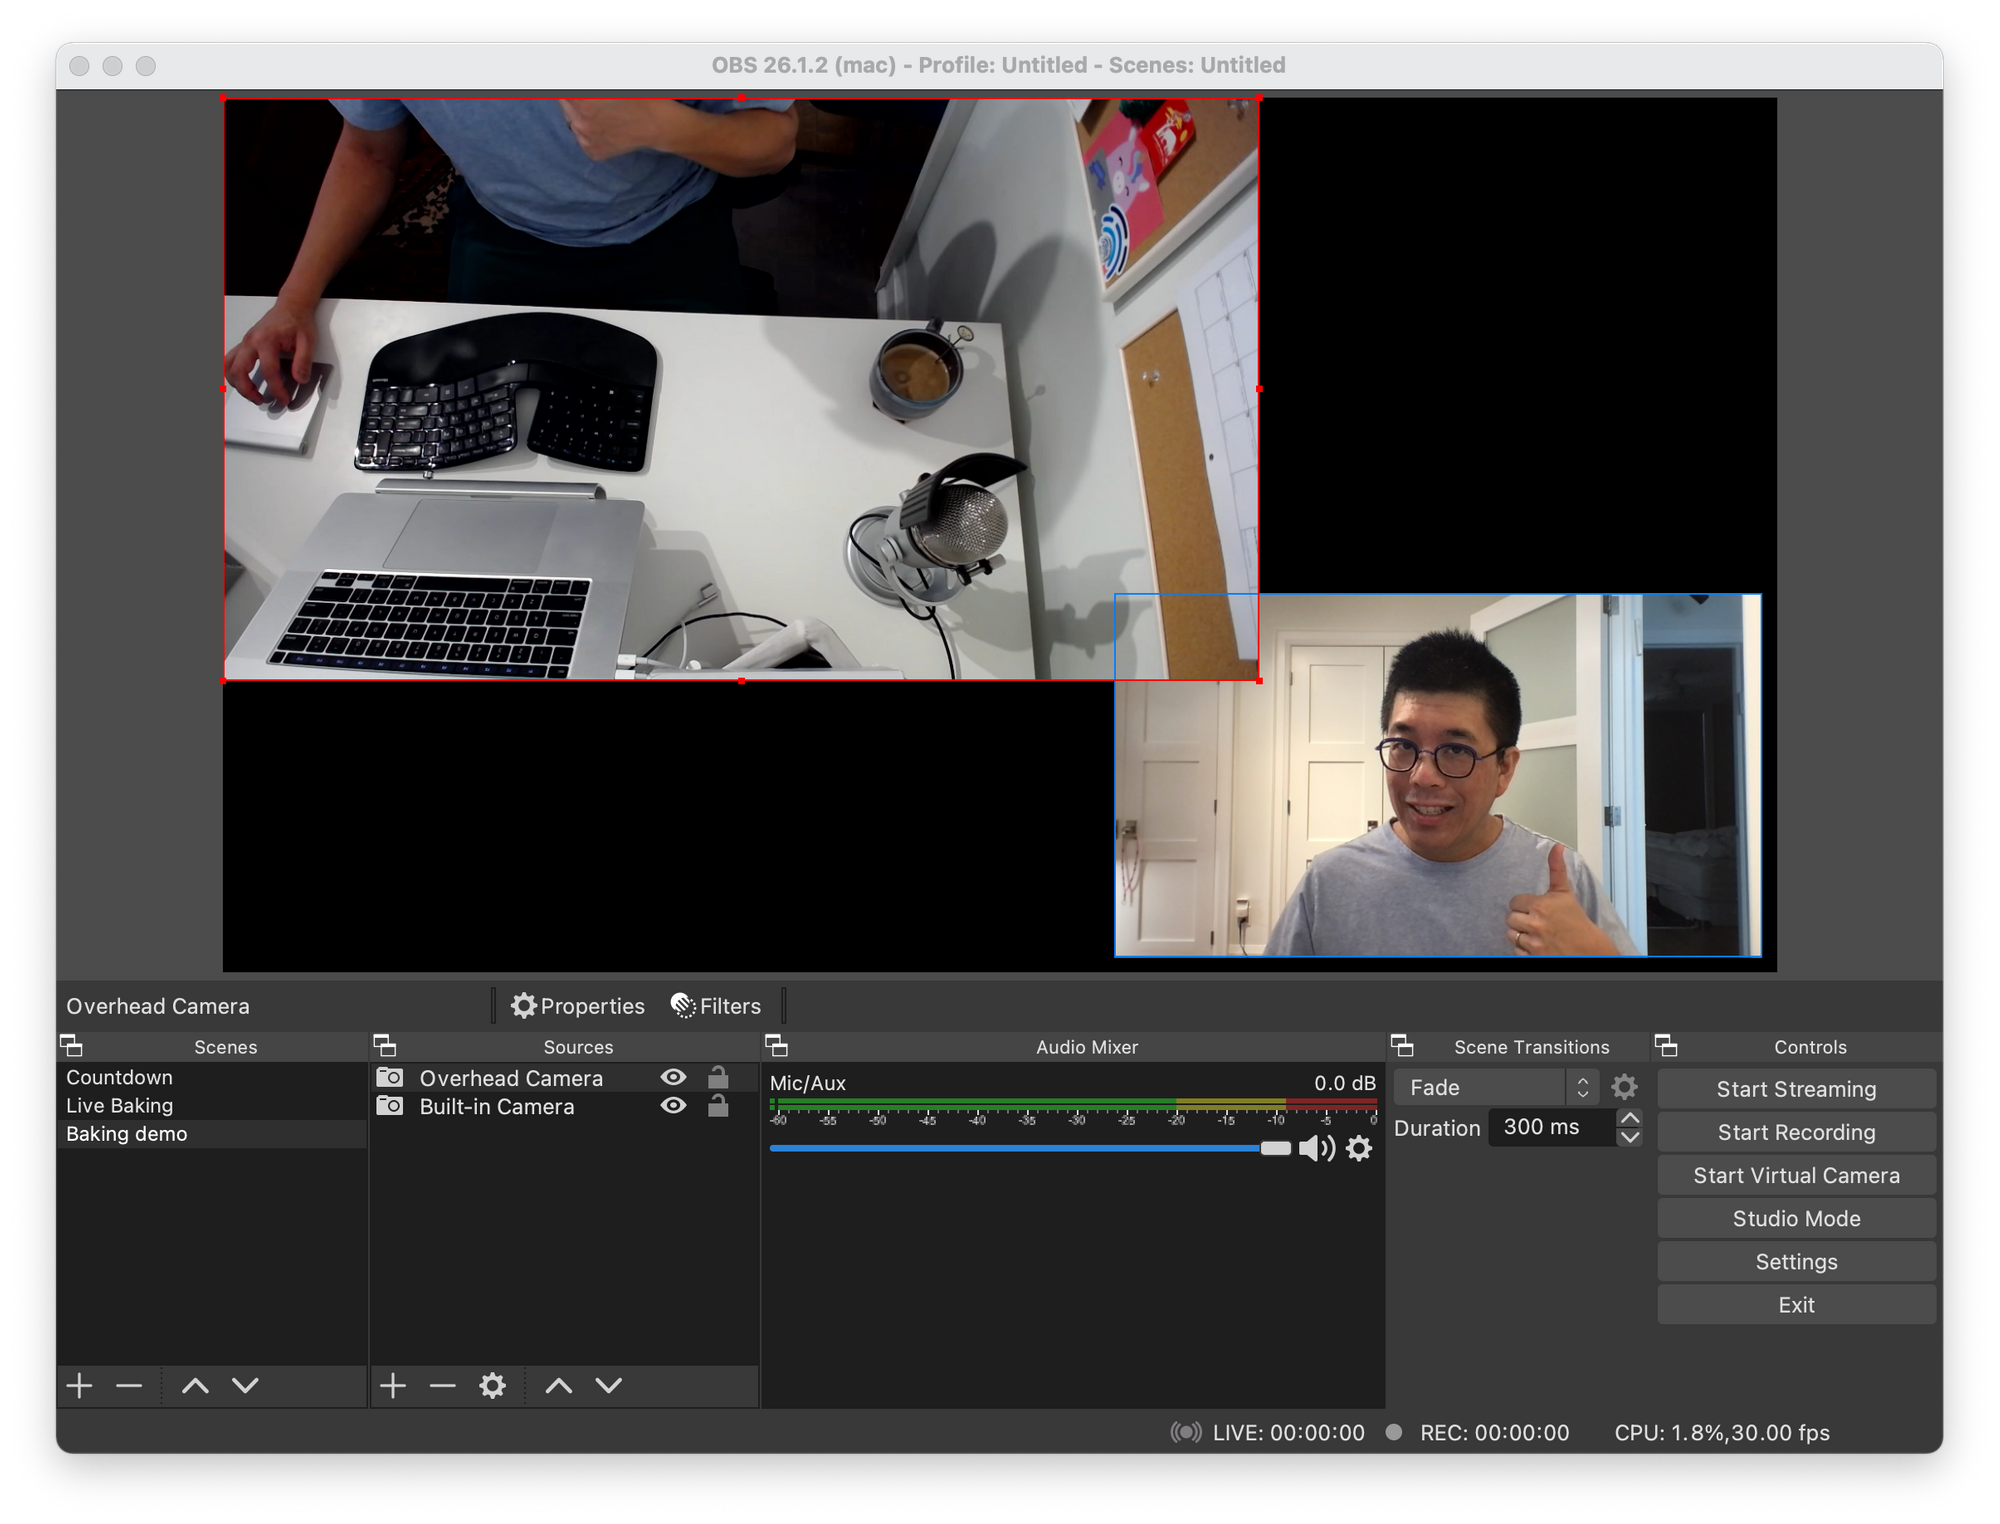 OBS scene with two video sources, the built-in camera, and an external webcam